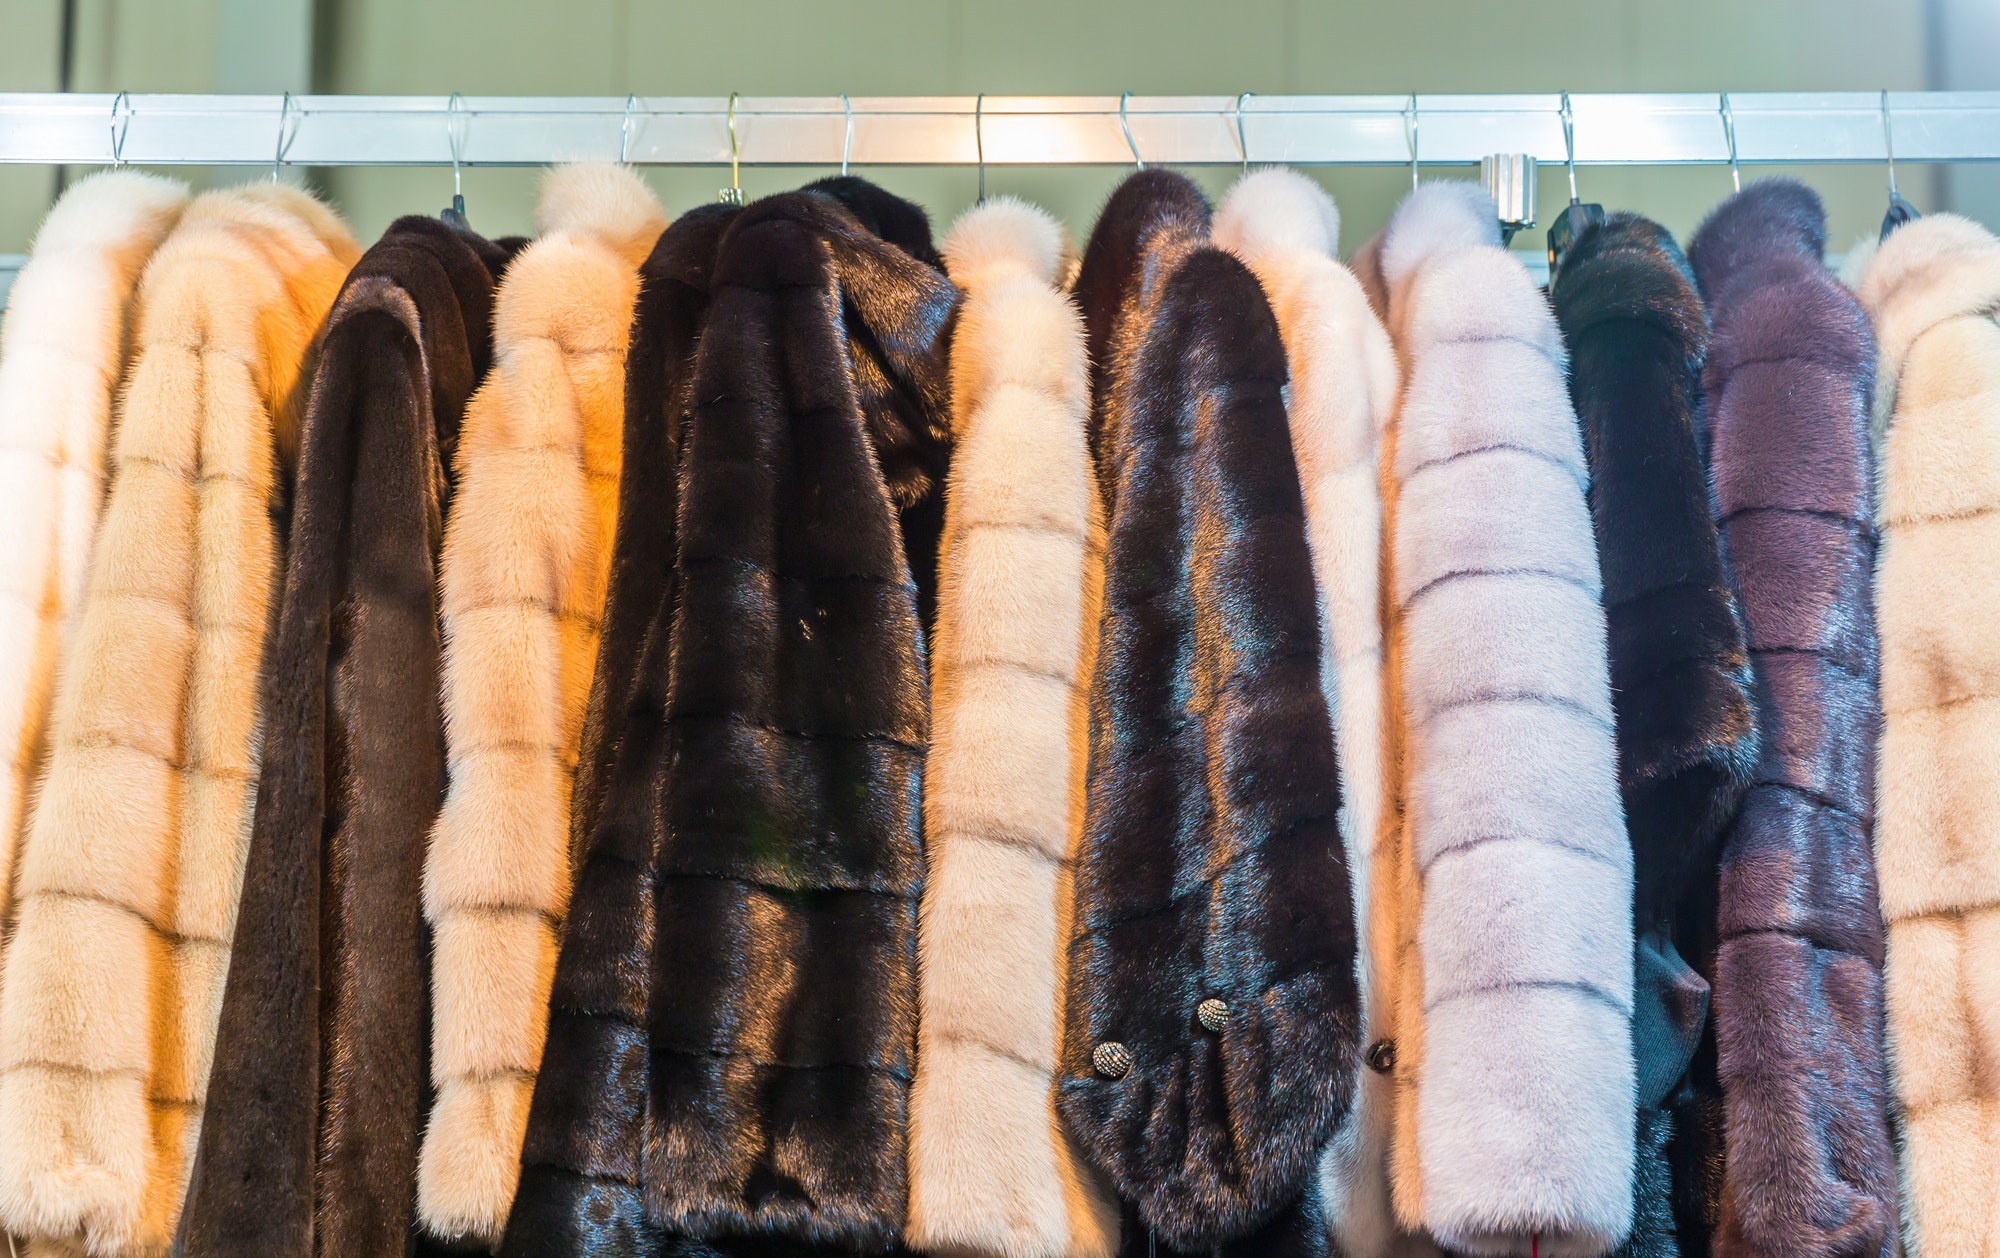 Collection of fur coats in shop, store showcase